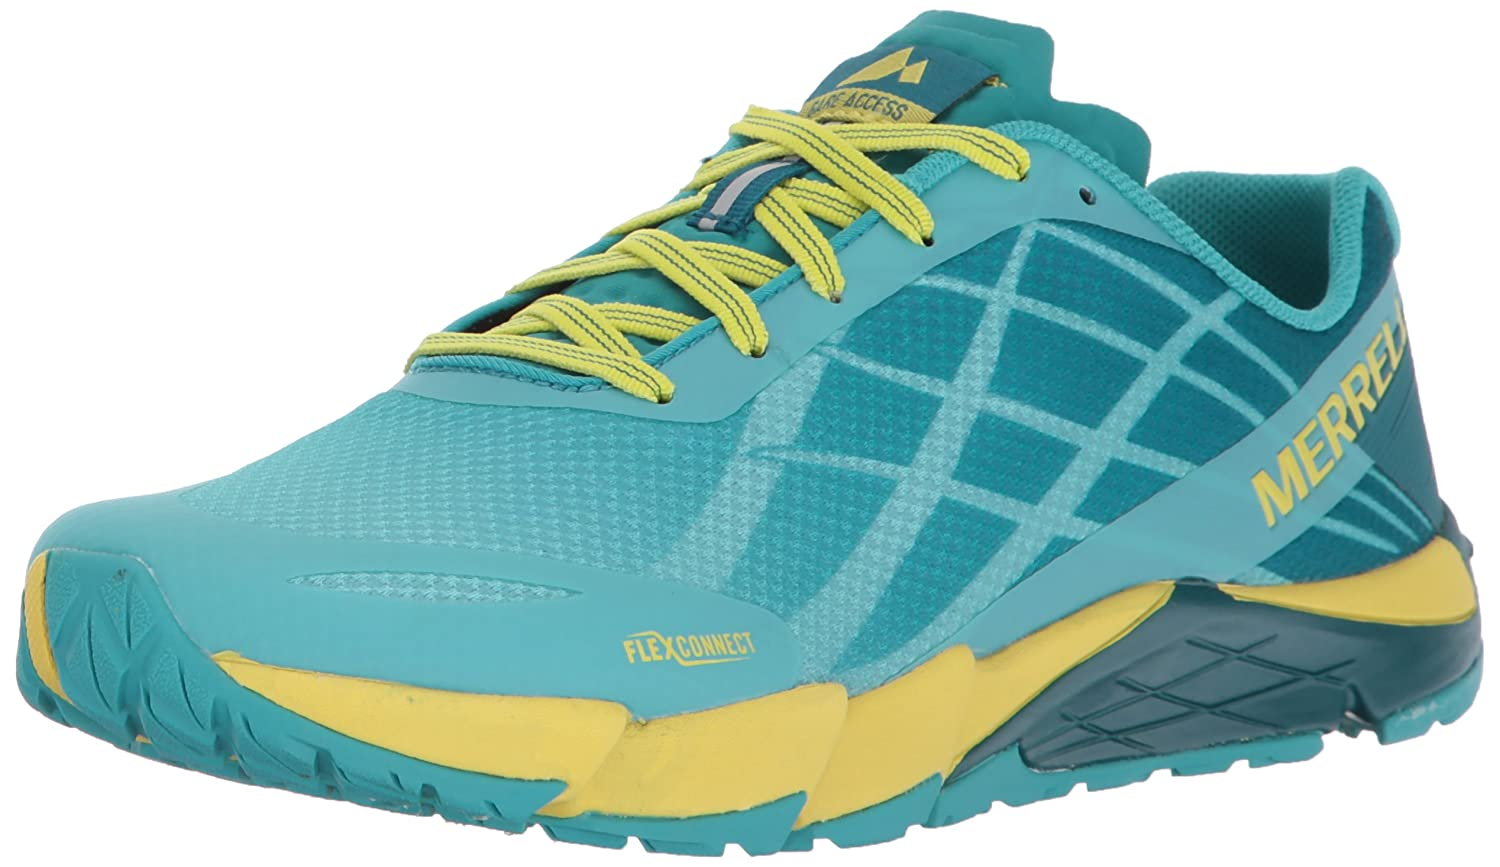 Merrell Women's Bare Access Flex Trail Runner B01MU0UIX5 8.5 B(M) US|Aruba Blue